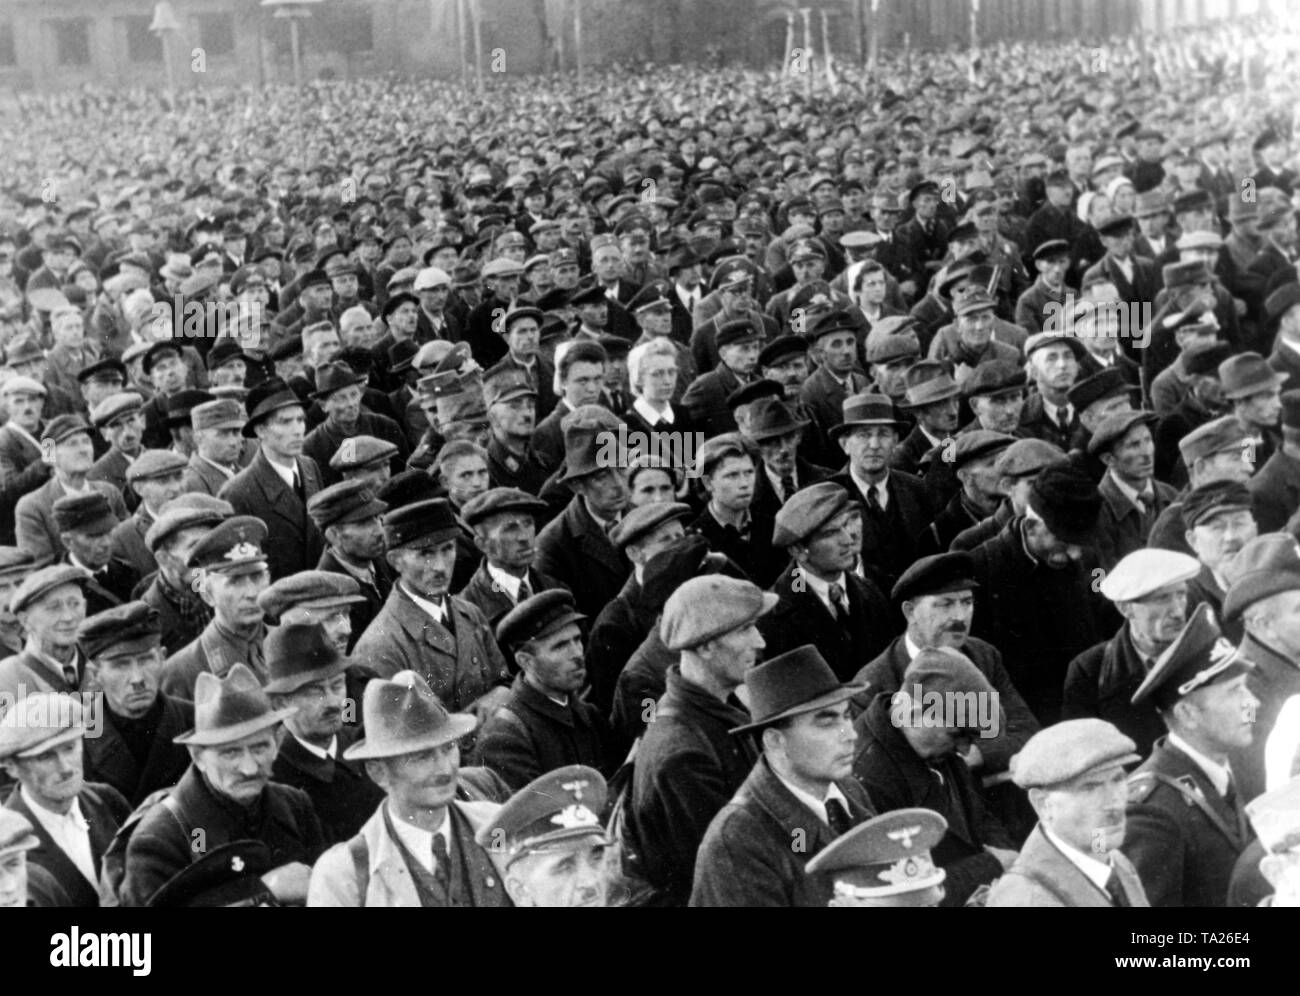 Soldiers of the Volkssturm listen the address of the Lower Silesian Gauleiter Karl Hanke. Stock Photo